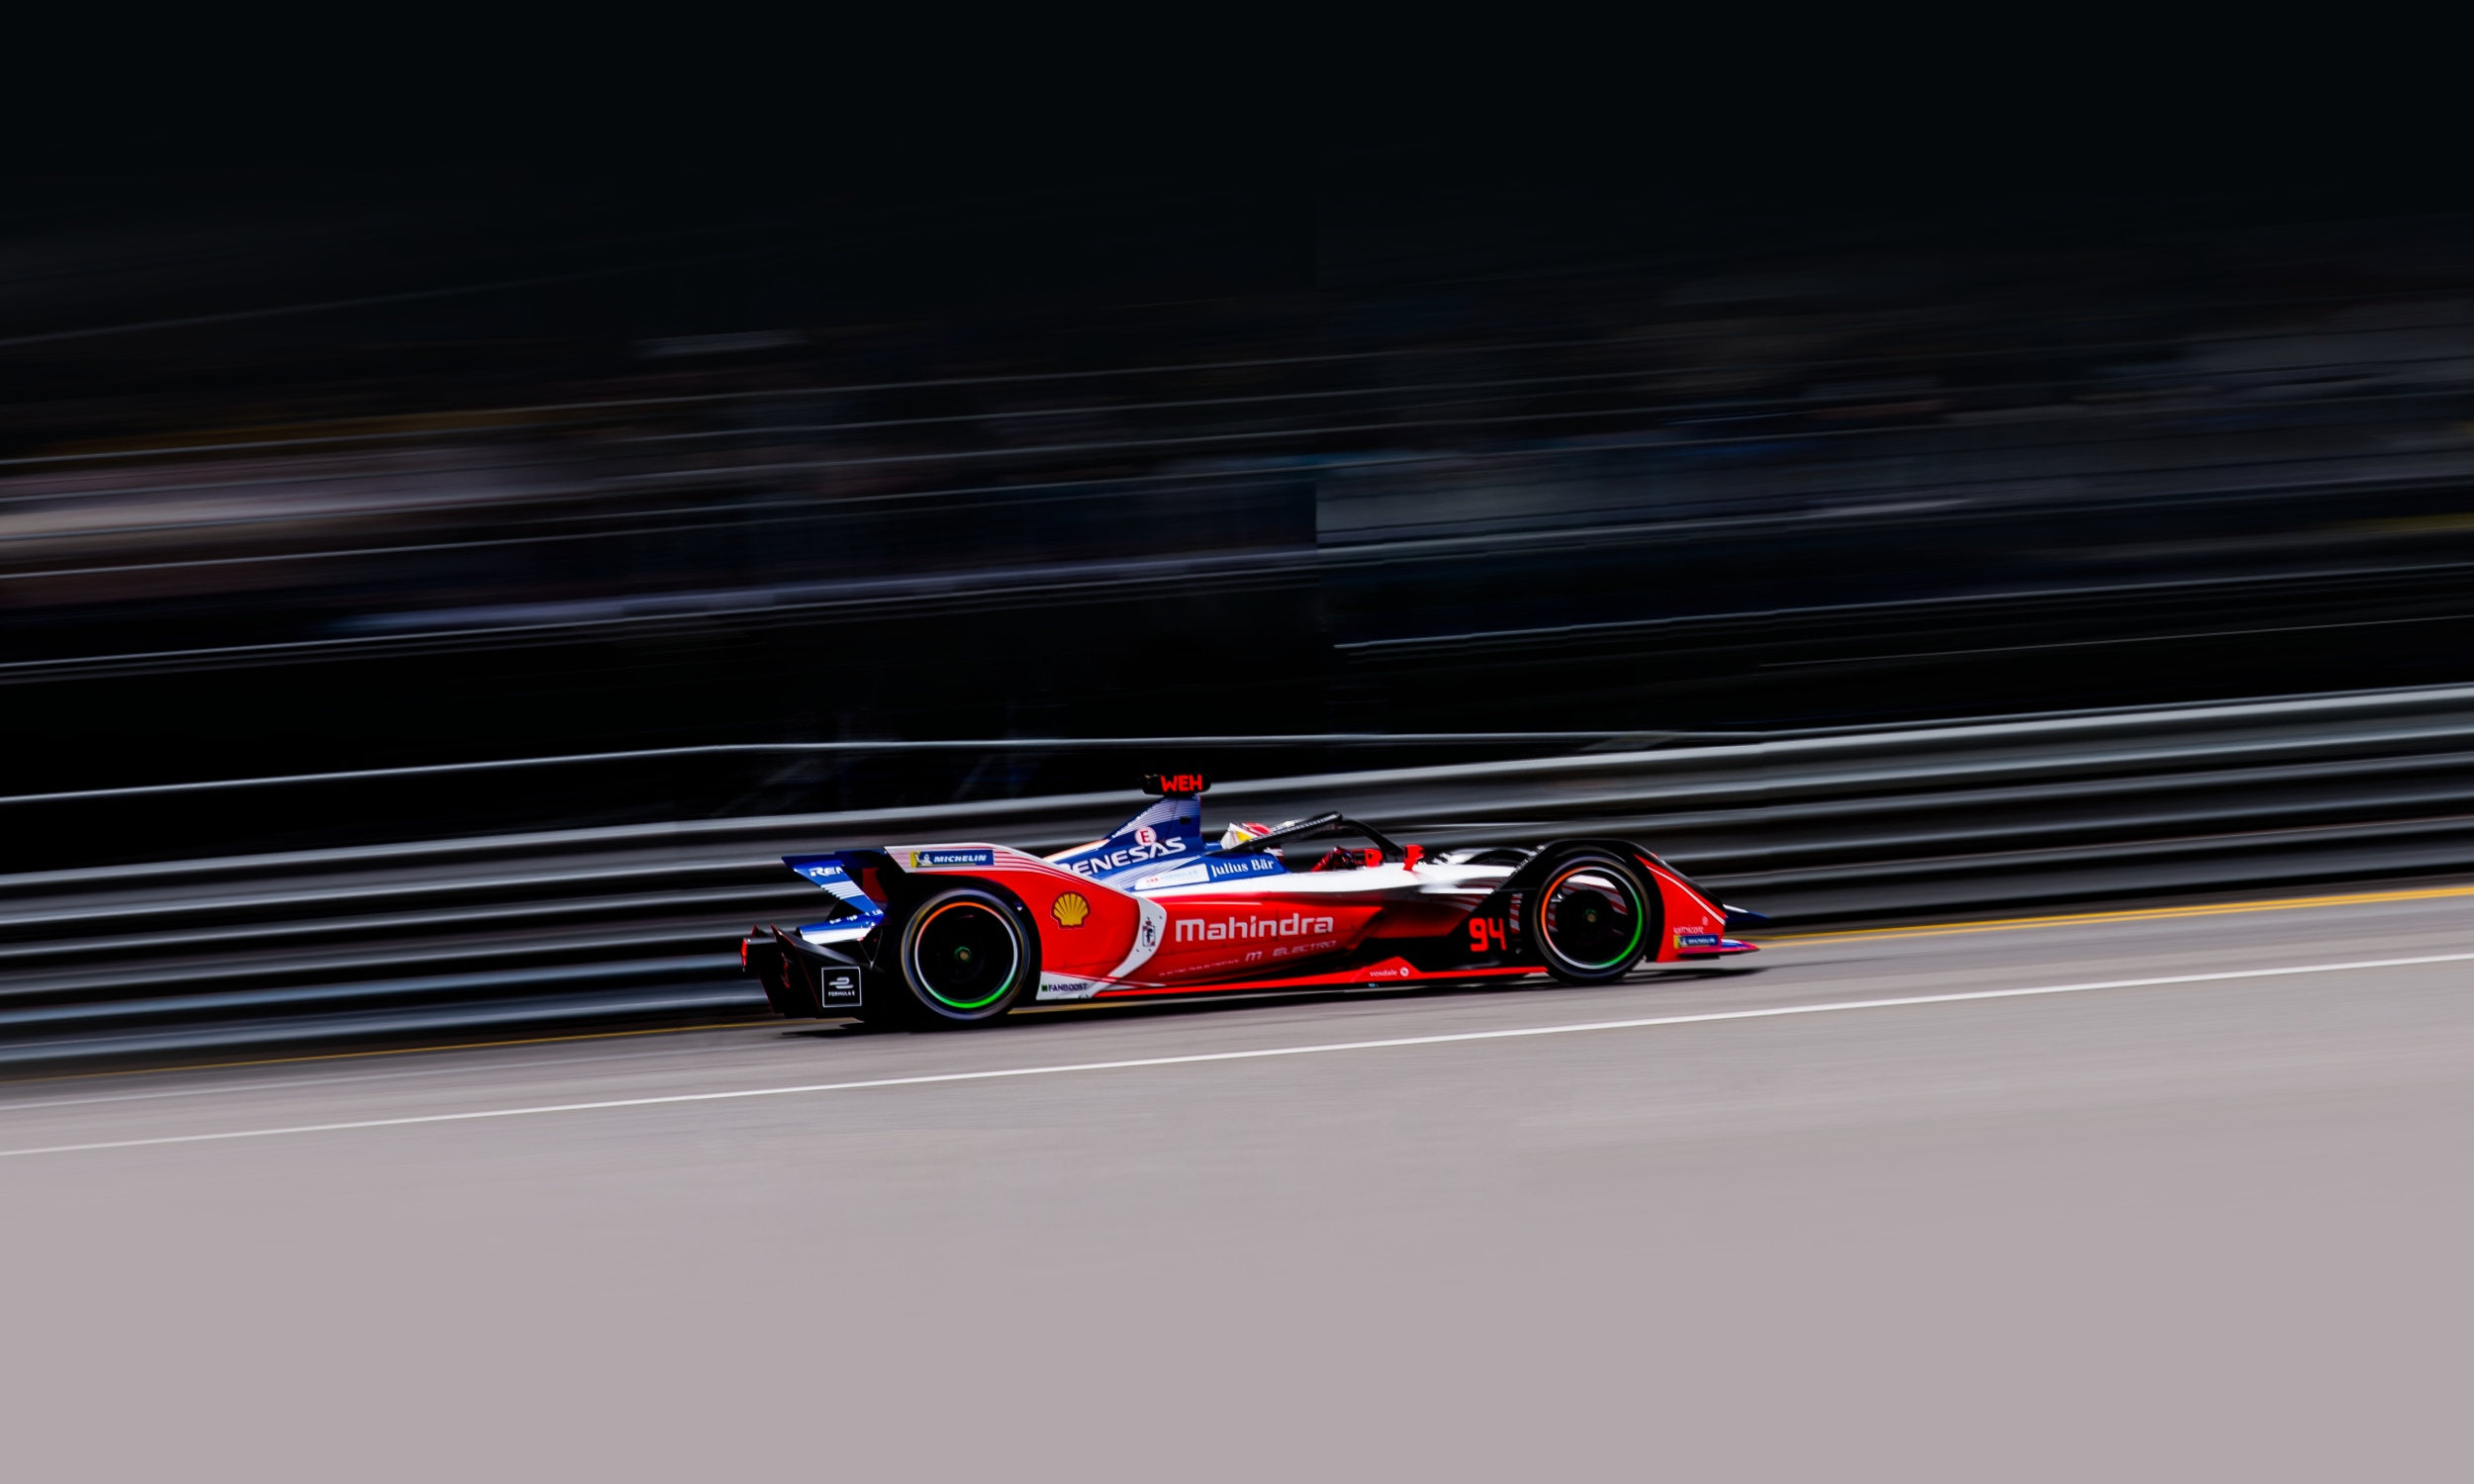 Points for Mahindra Racing's Pascal Wehrlein at home E-Prix